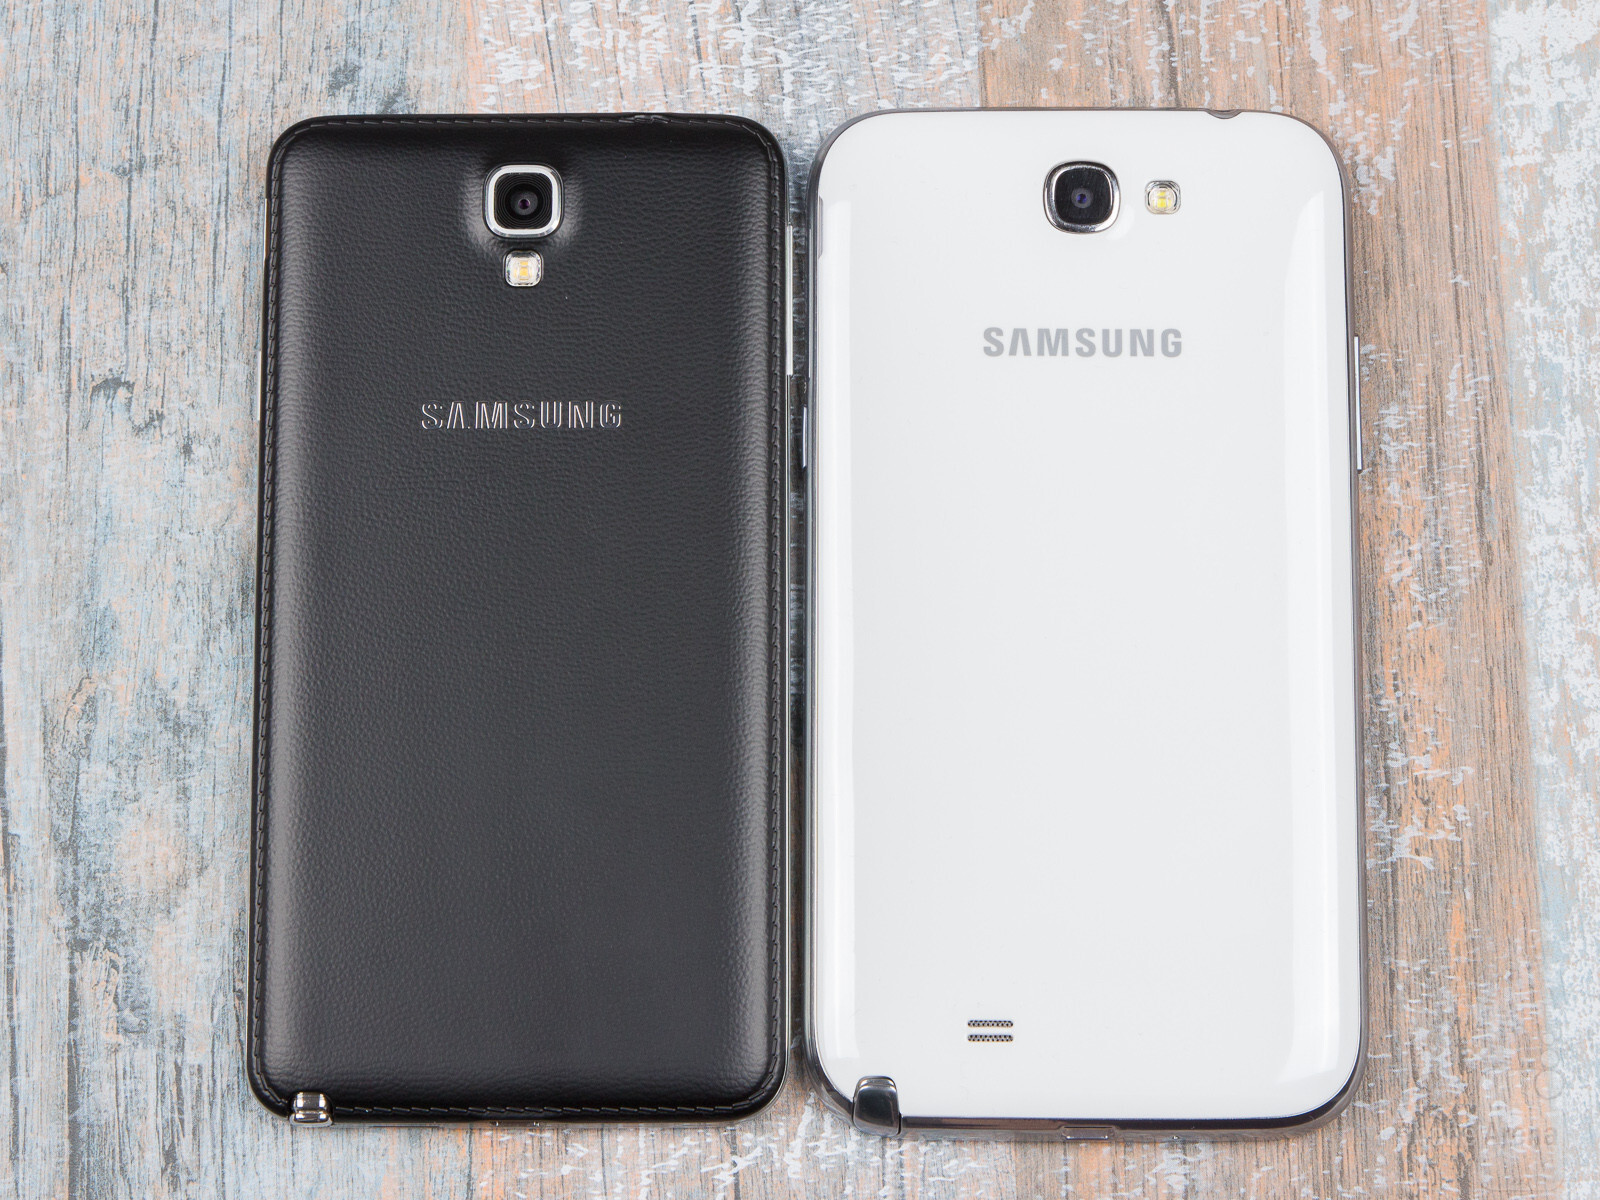 Samsung galaxy note 3 neo vs note ii first look - Samsung galaxy note 3 lite vs note 3 ...